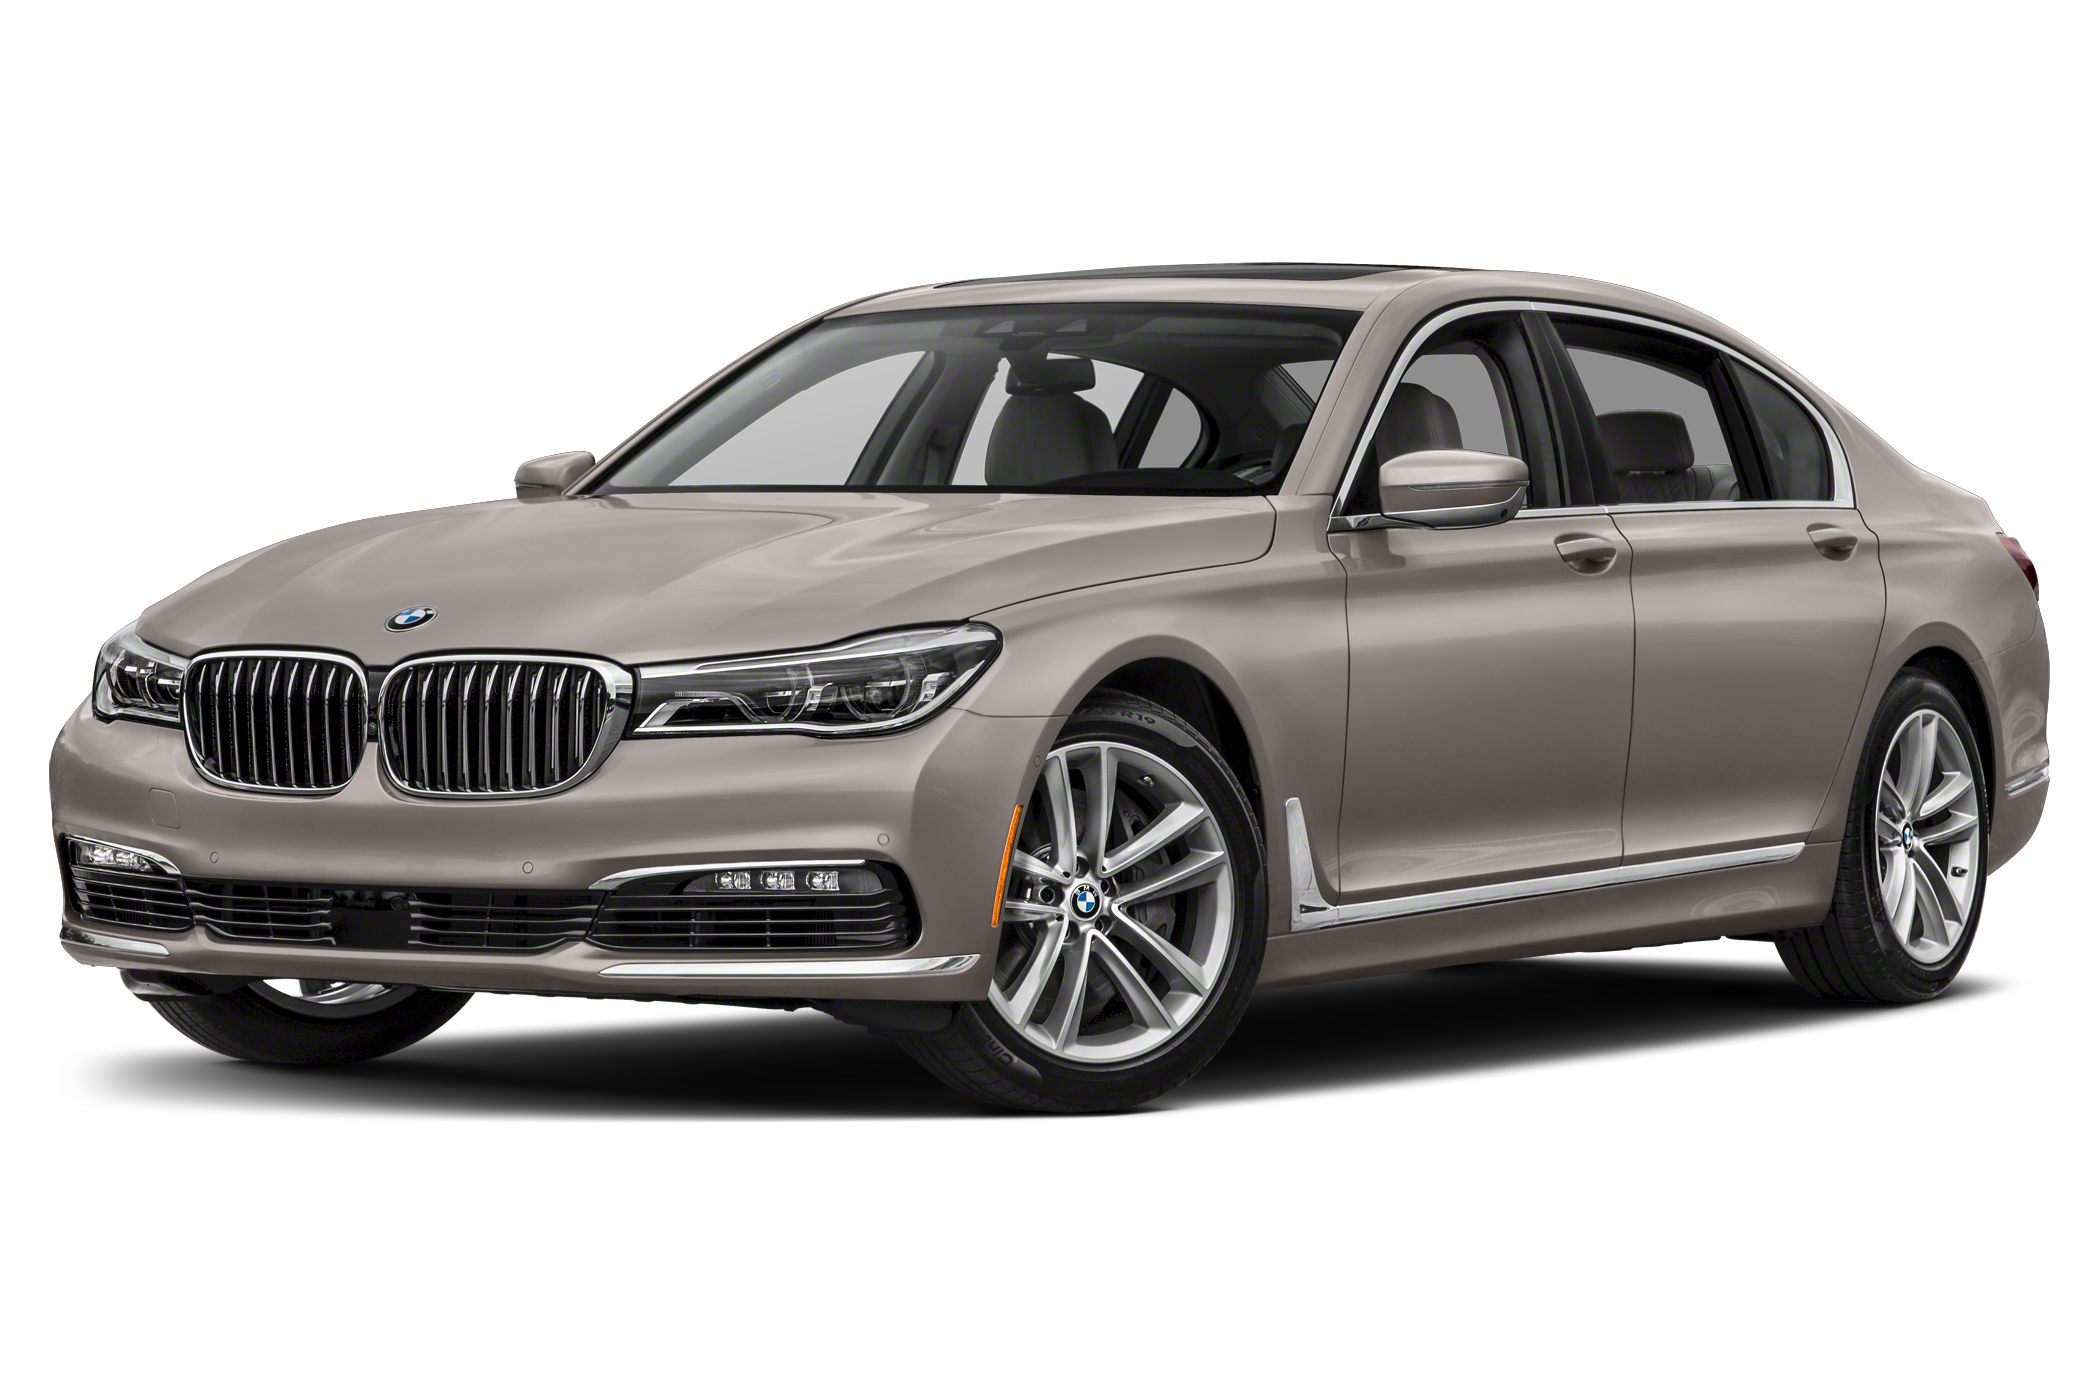 2017 Bmw 750 Pricing And Specs